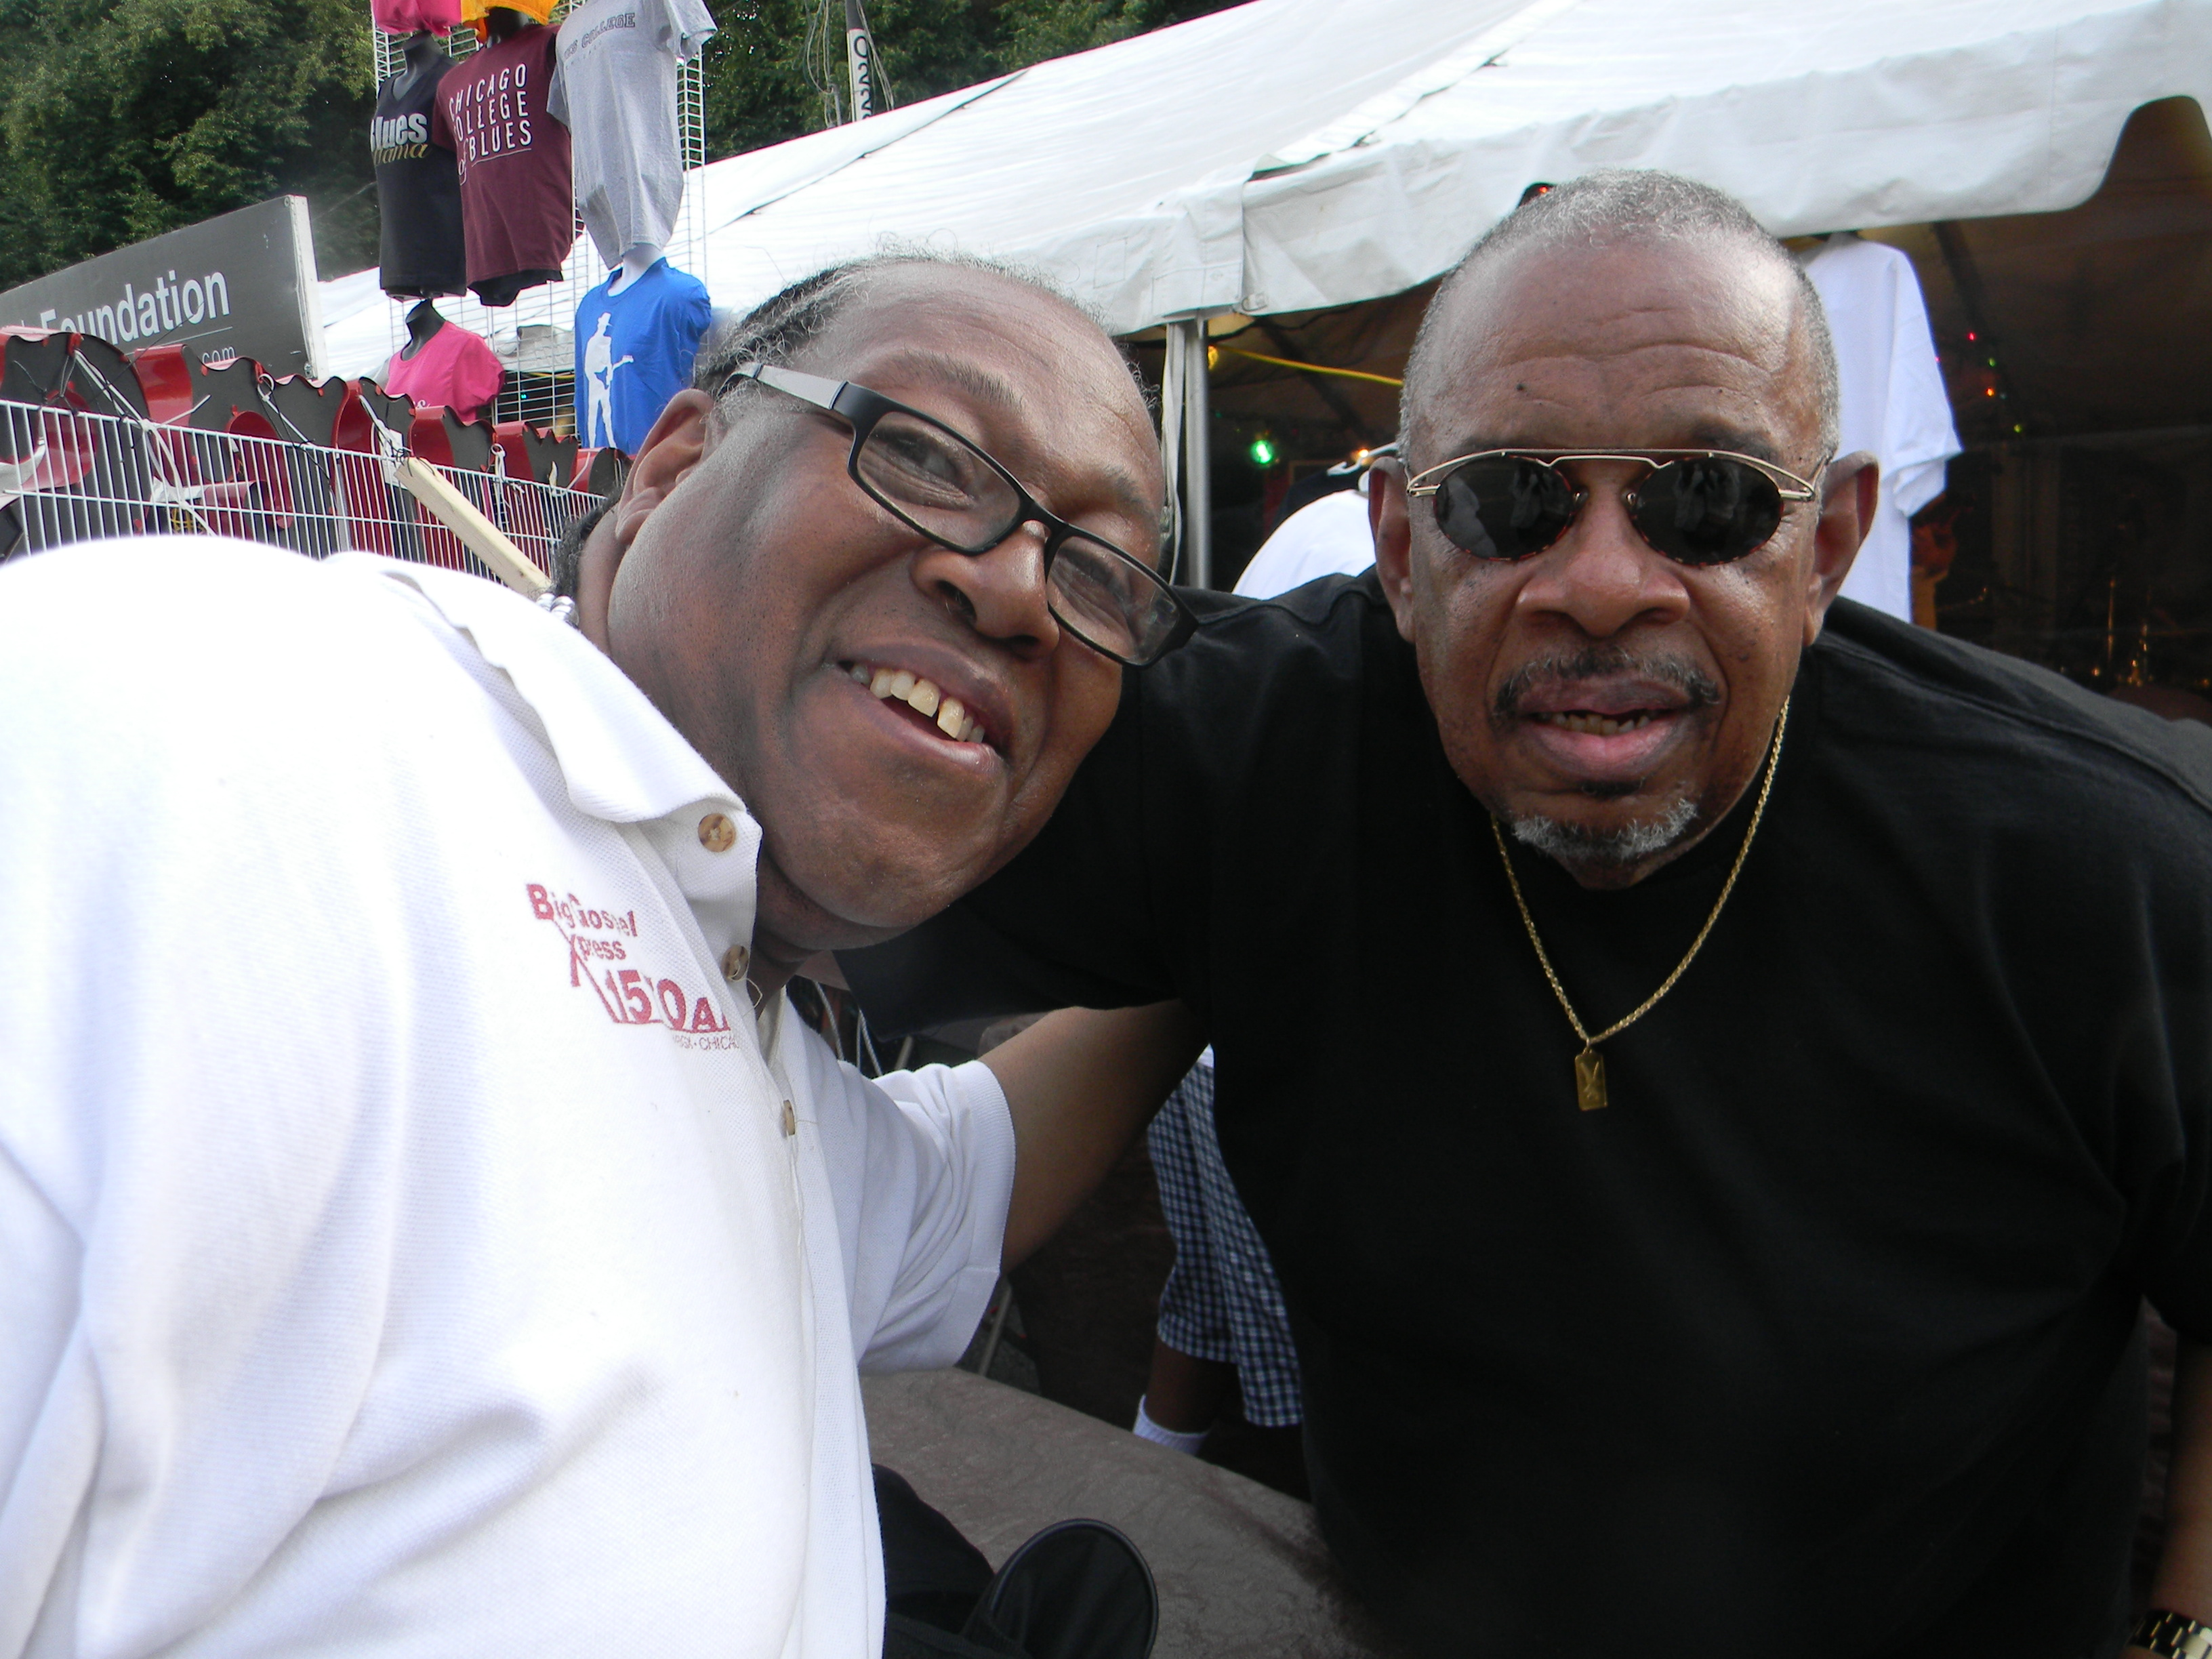 PJ WILLIS WITH FRED WESLEY OF THE JB's